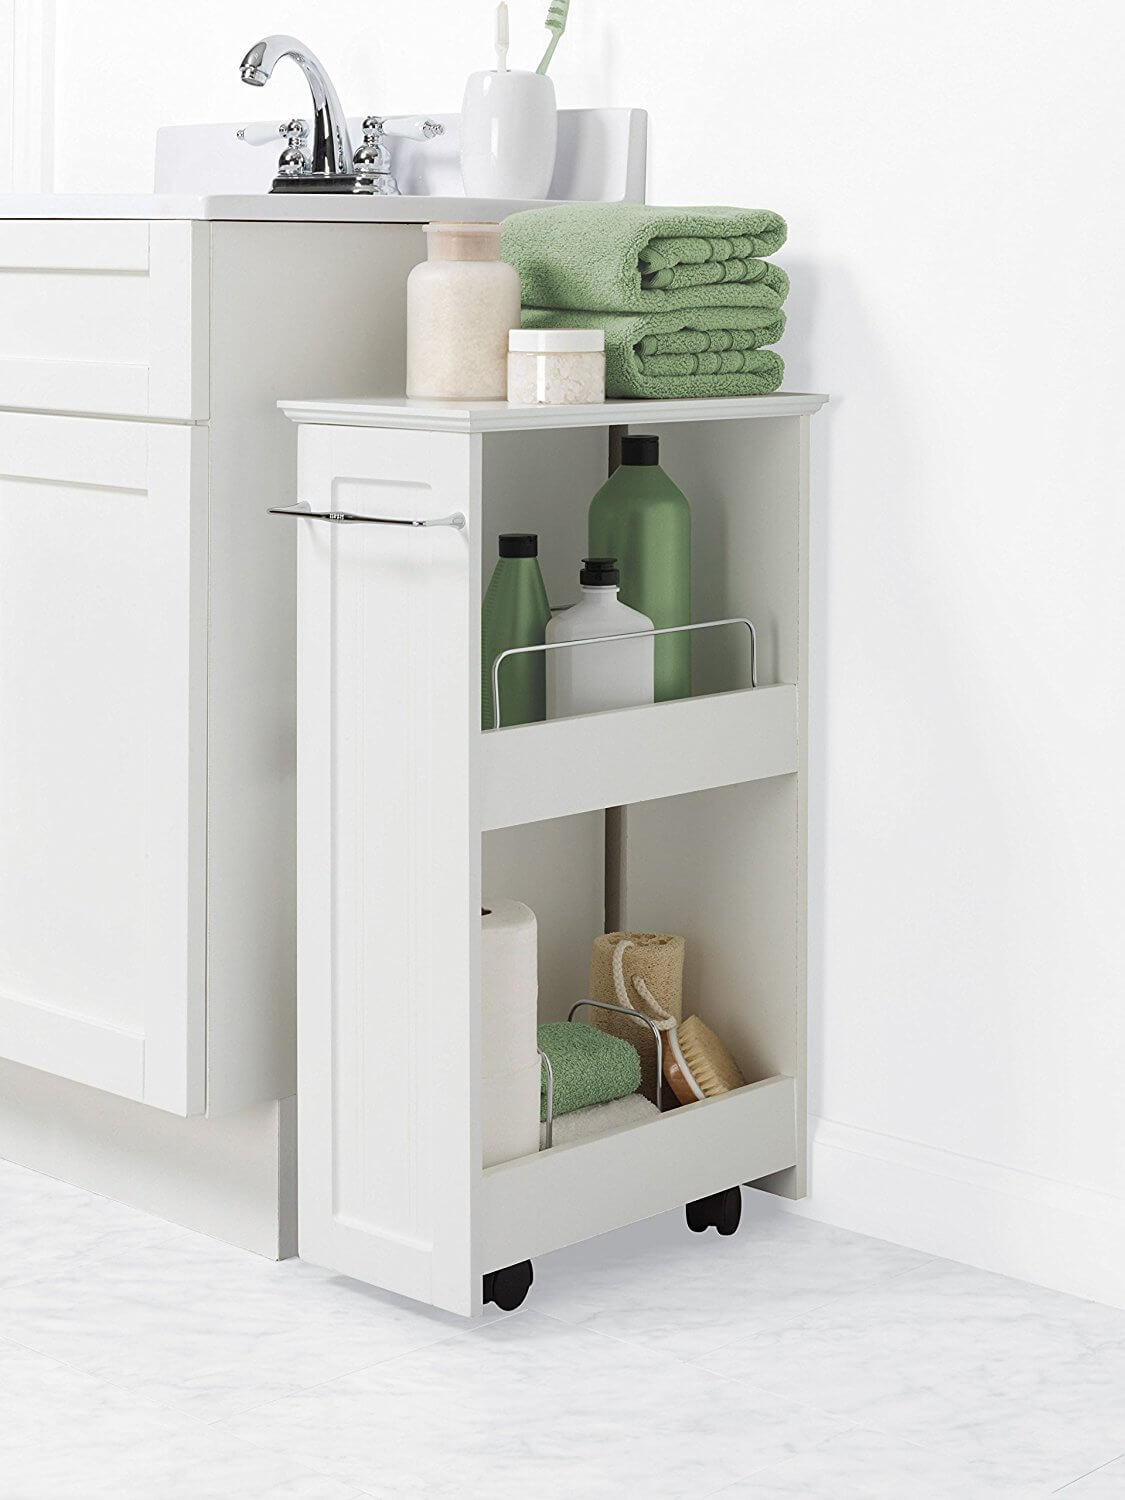 26 Best Bathroom Storage Cabinet Ideas For 2019 in sizing 1125 X 1500